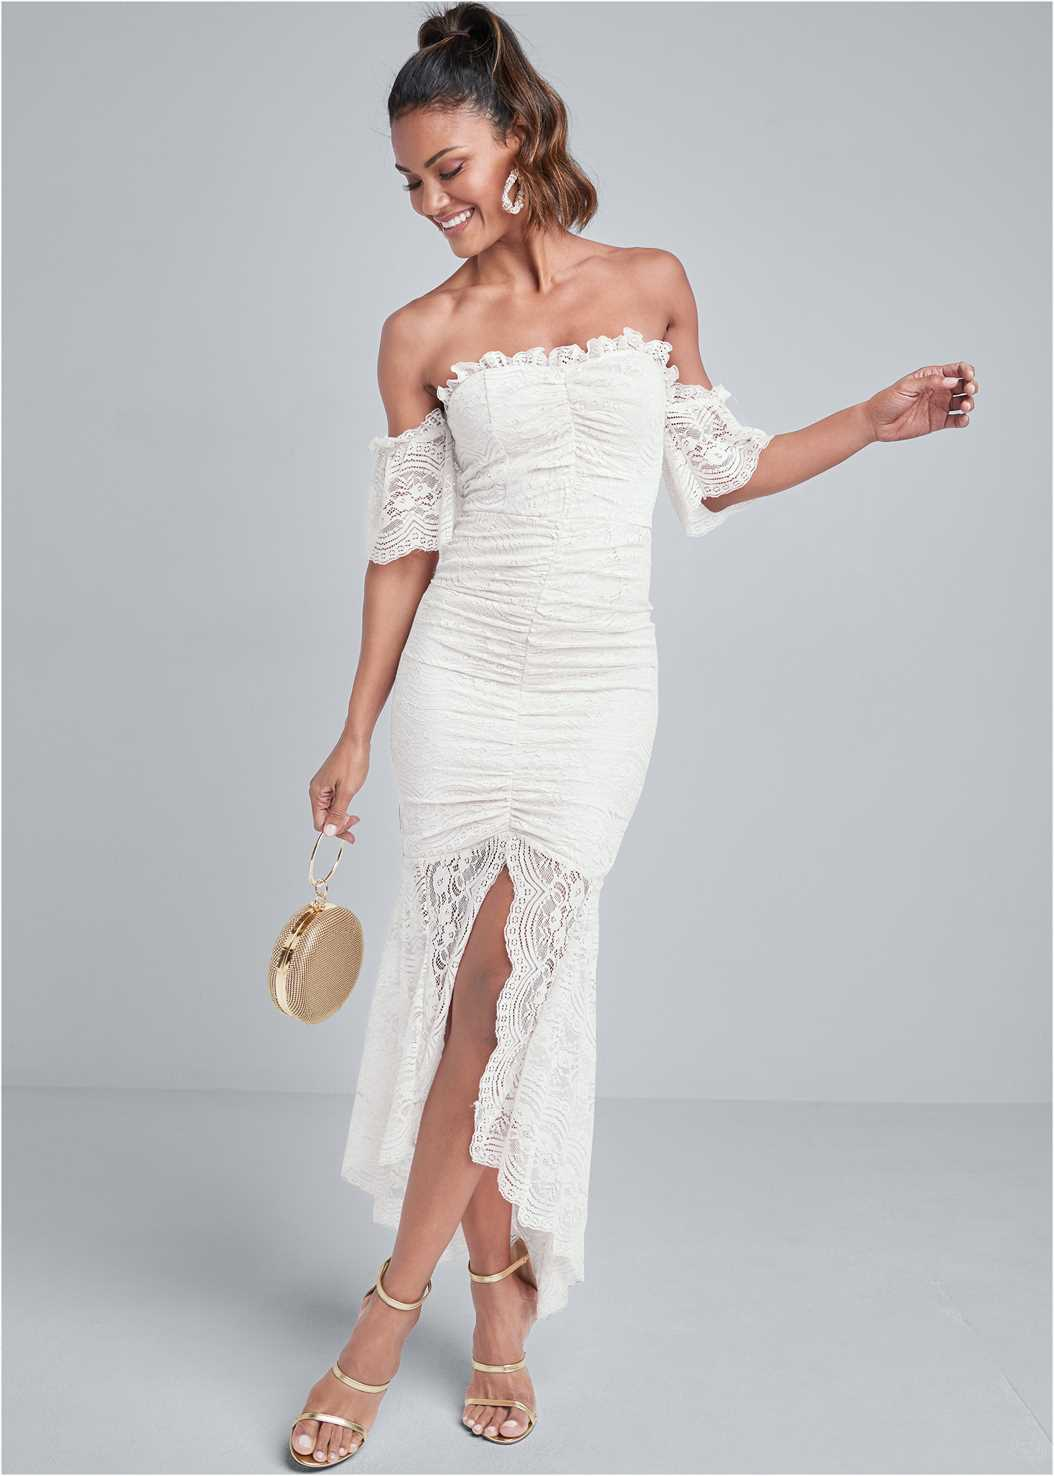 Off Shoulder Lace Dress,High Heel Strappy Sandals,Beaded Rope Earrings,Ring Handle Circle Clutch